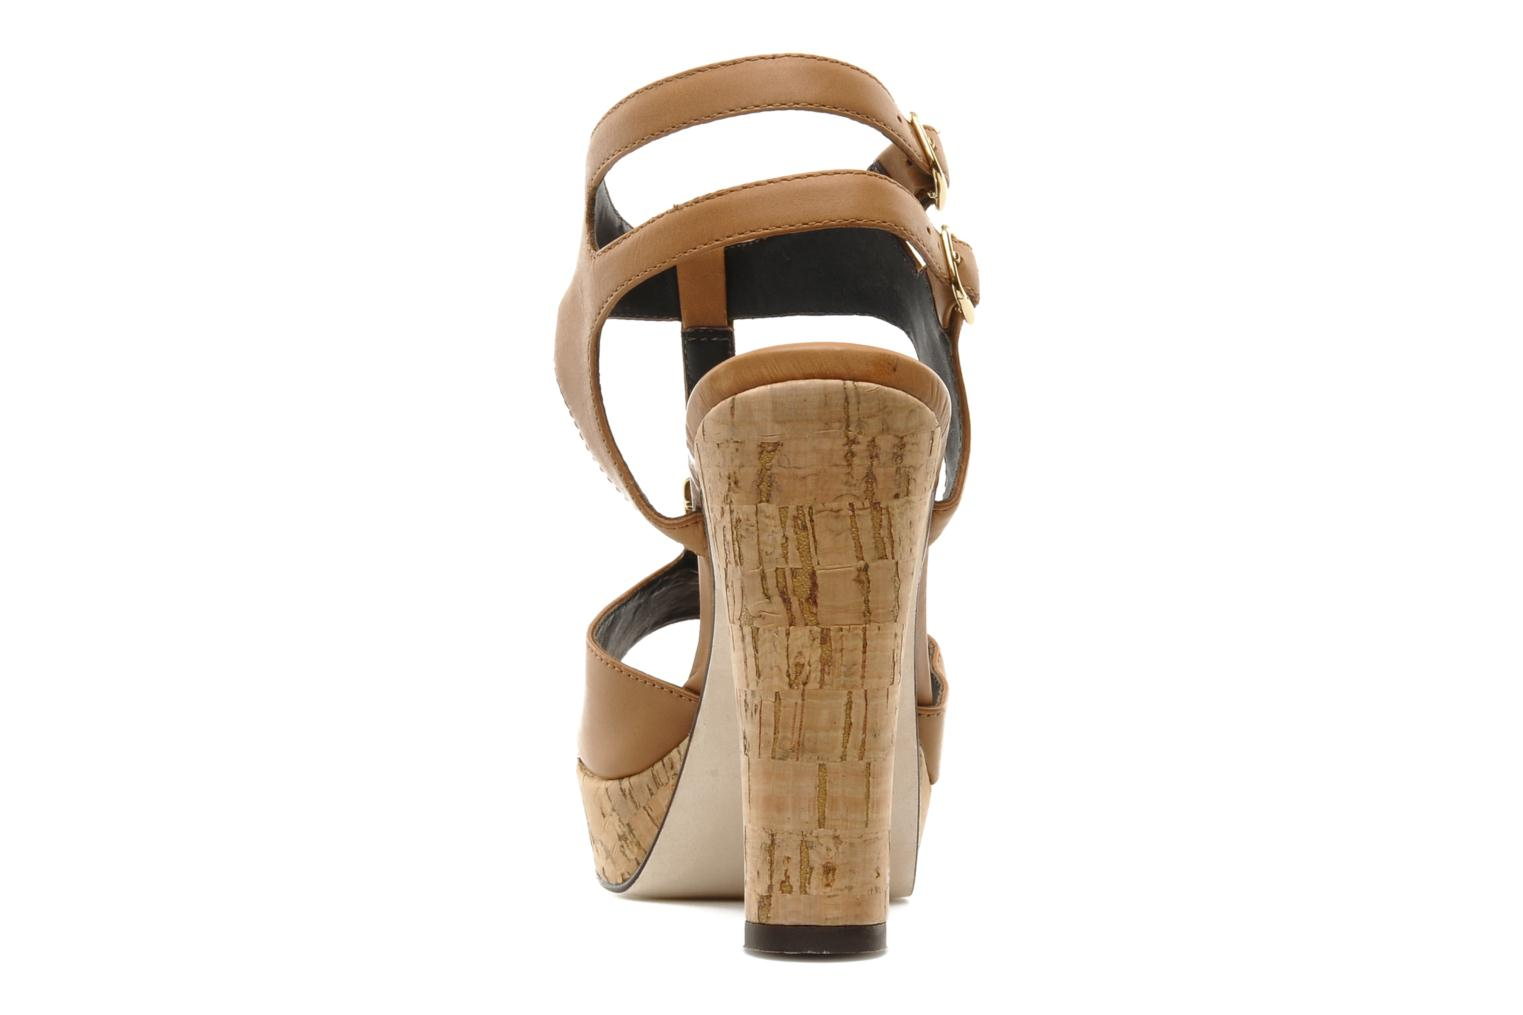 Sandalias Tila March Plateform sandal t-bar Marrón vista lateral derecha